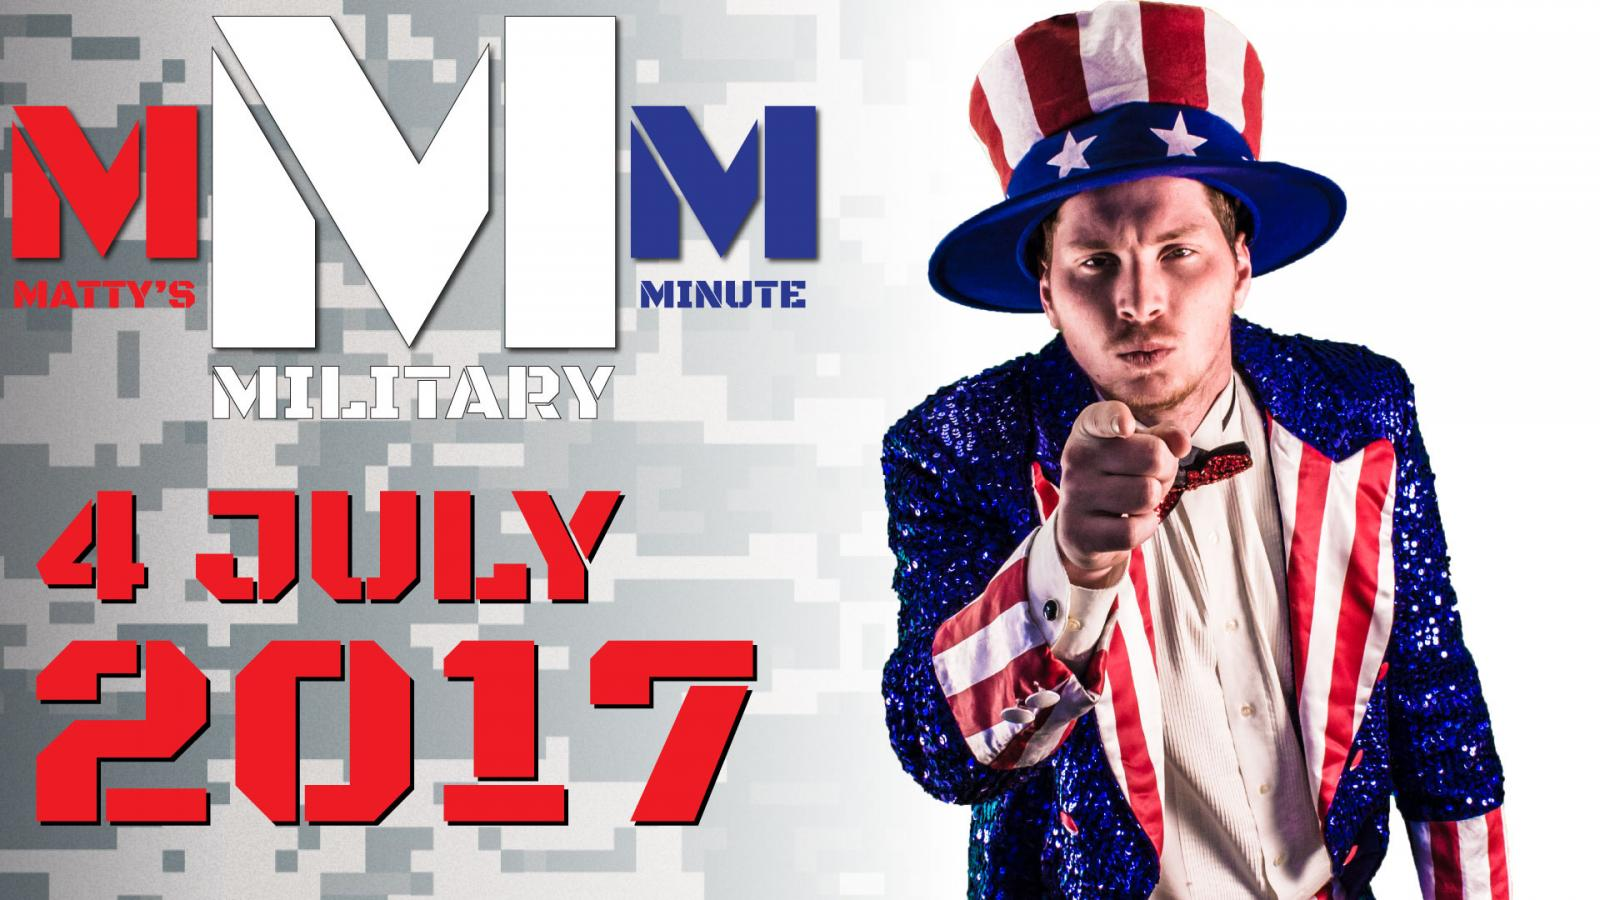 Military Minute - July 4th Special